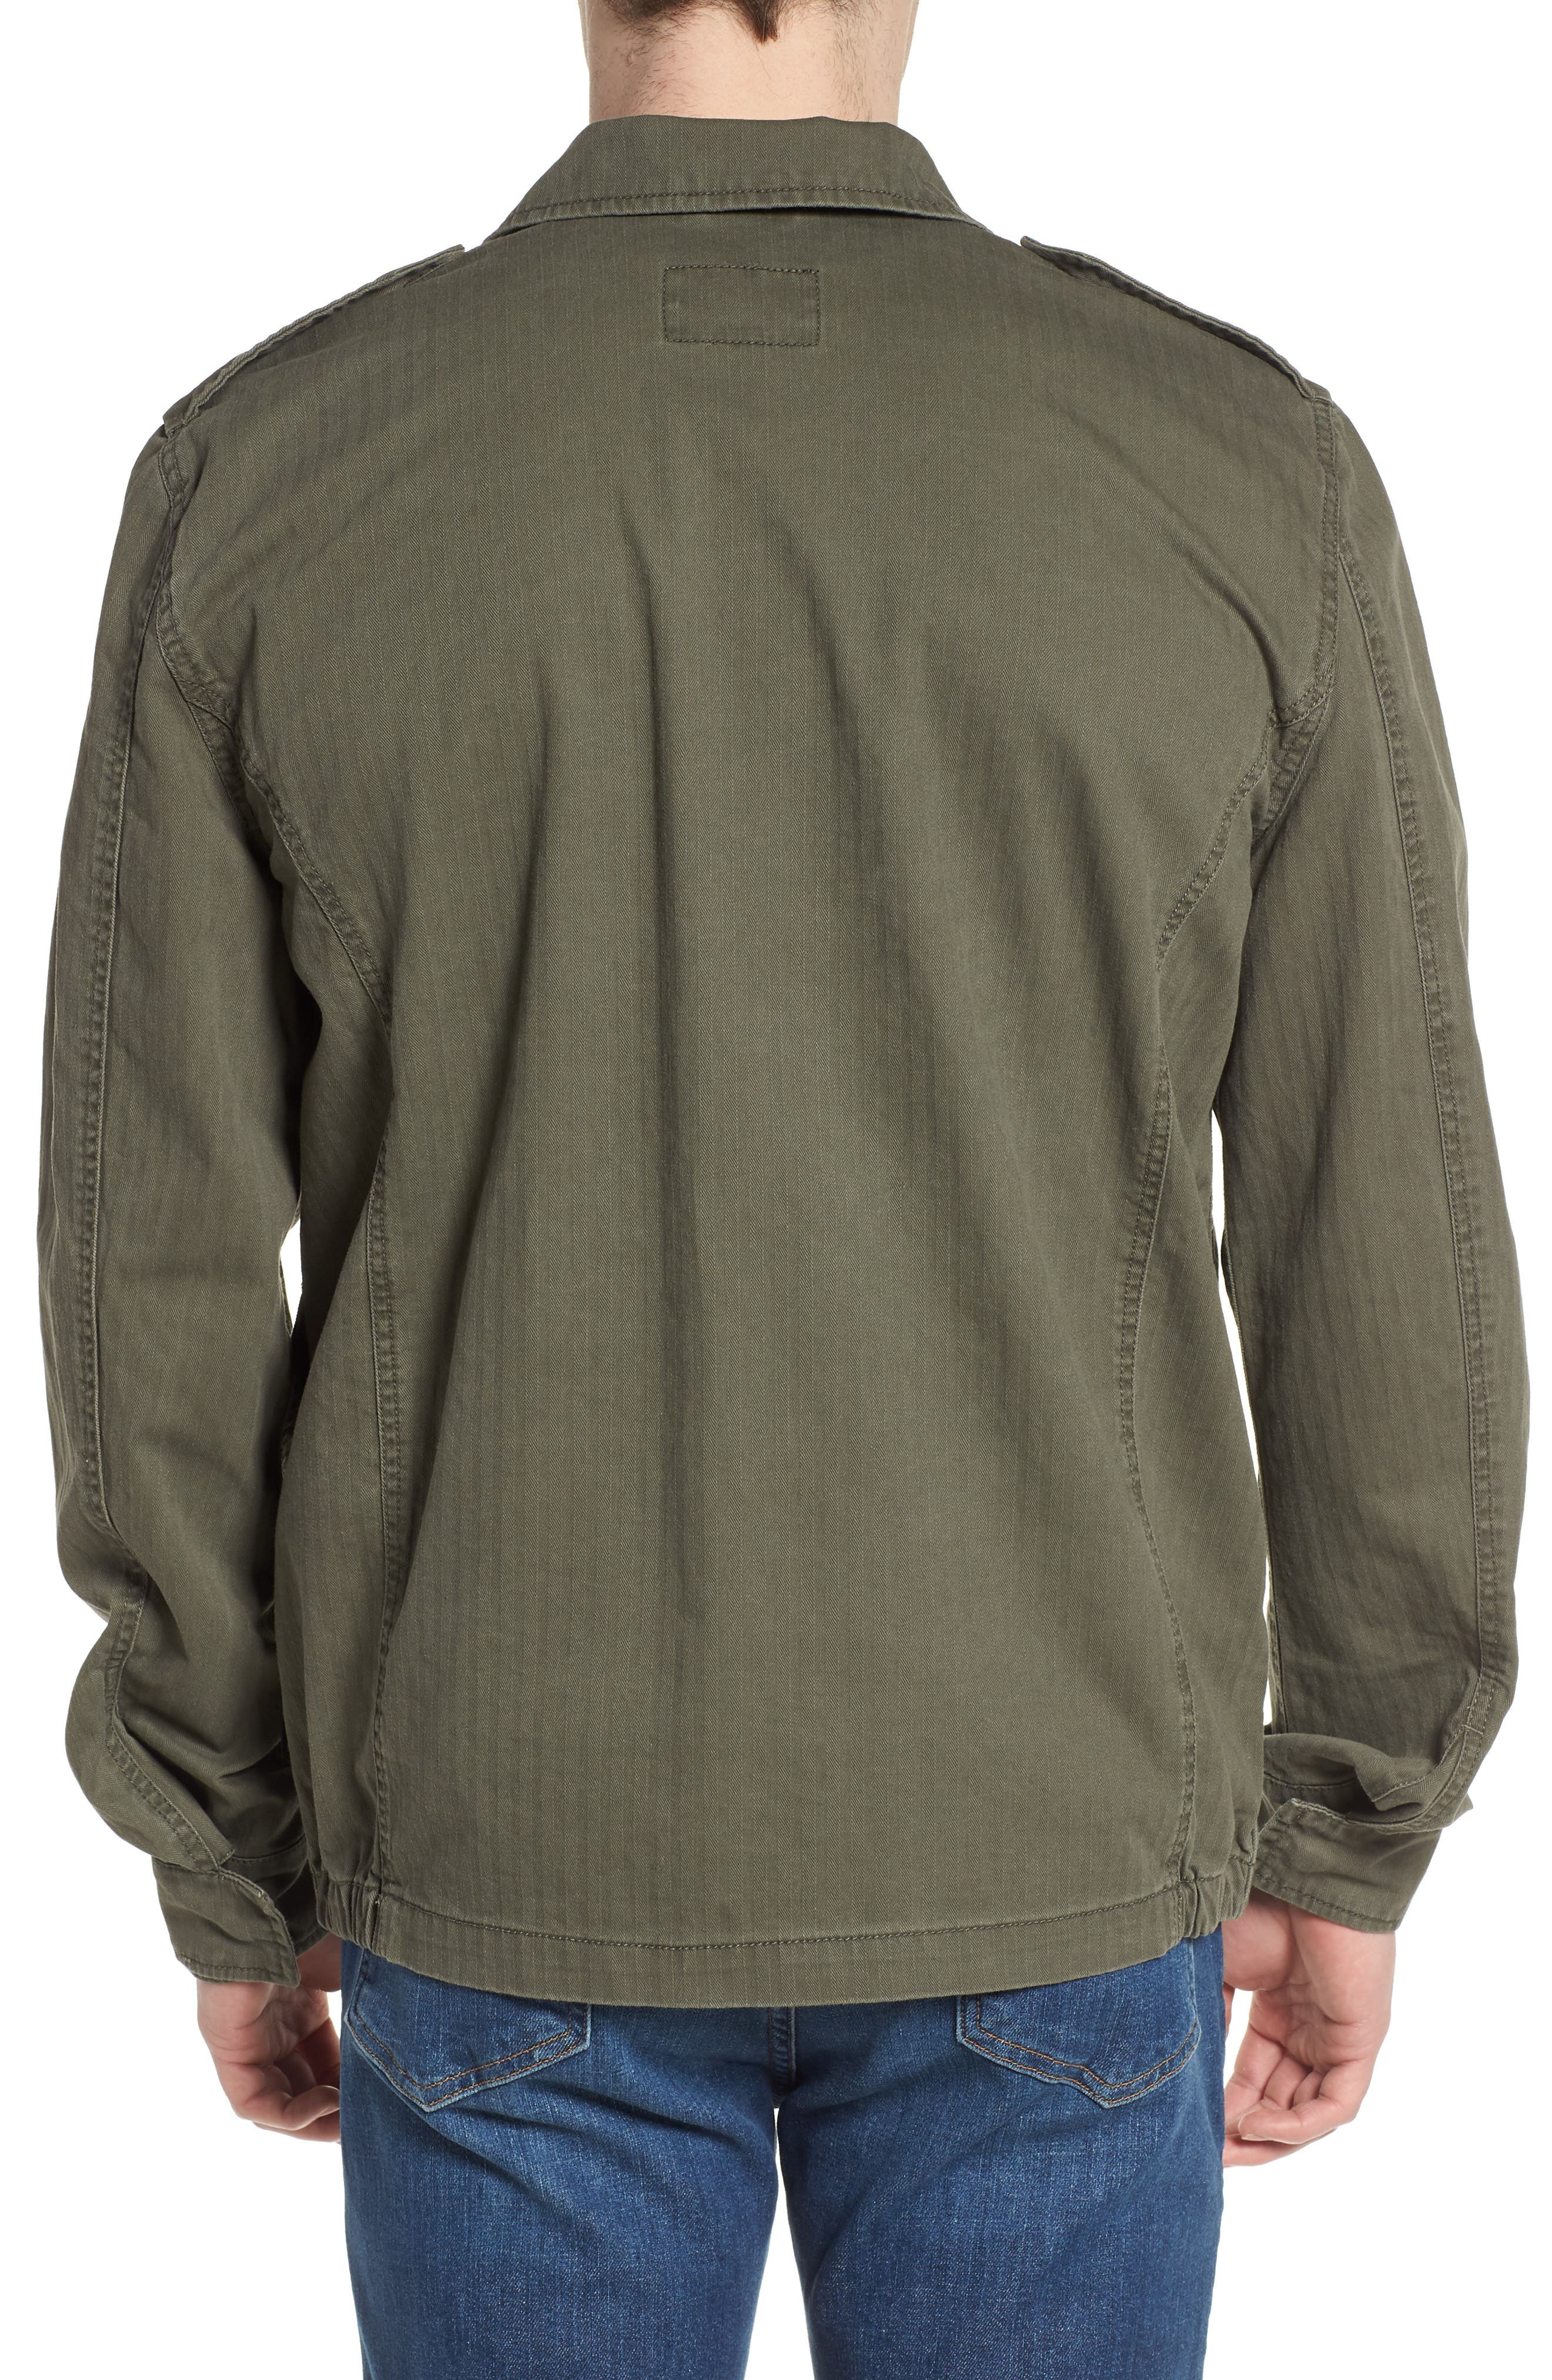 F-2 French Field Jacket,                             Alternate thumbnail 2, color,                             300